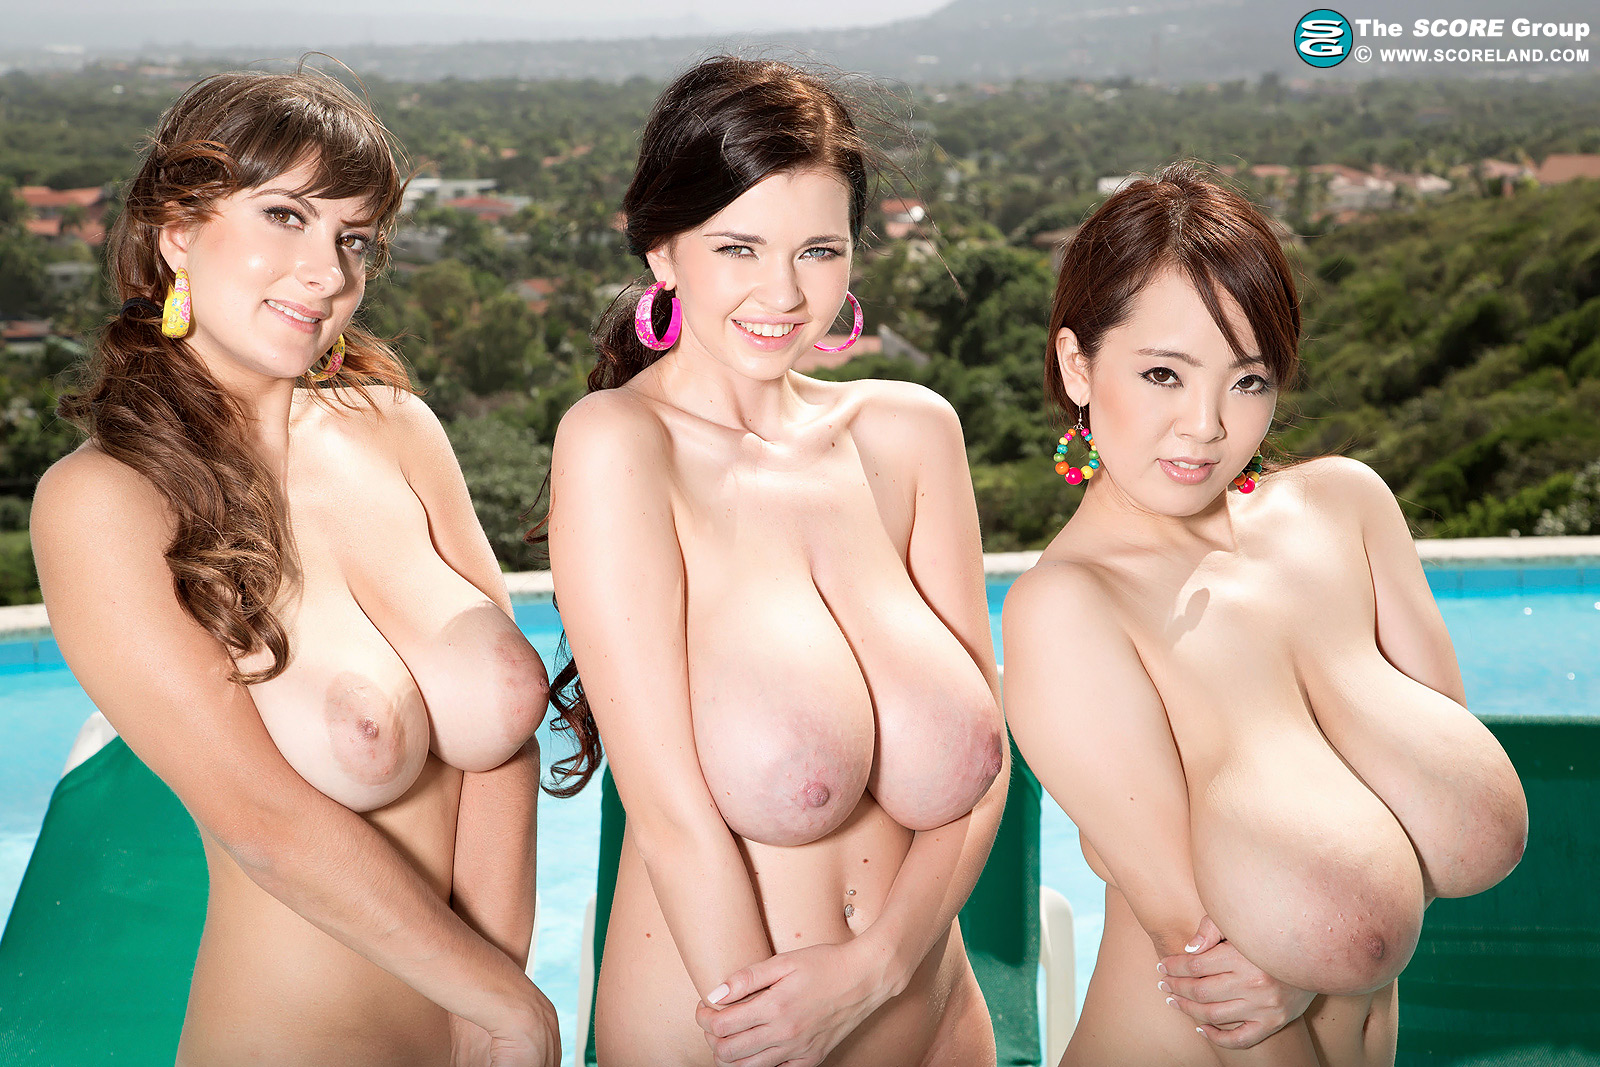 Group of women with big tits getting fucked Group Big Tits Sex Very Hot Photos Free Site